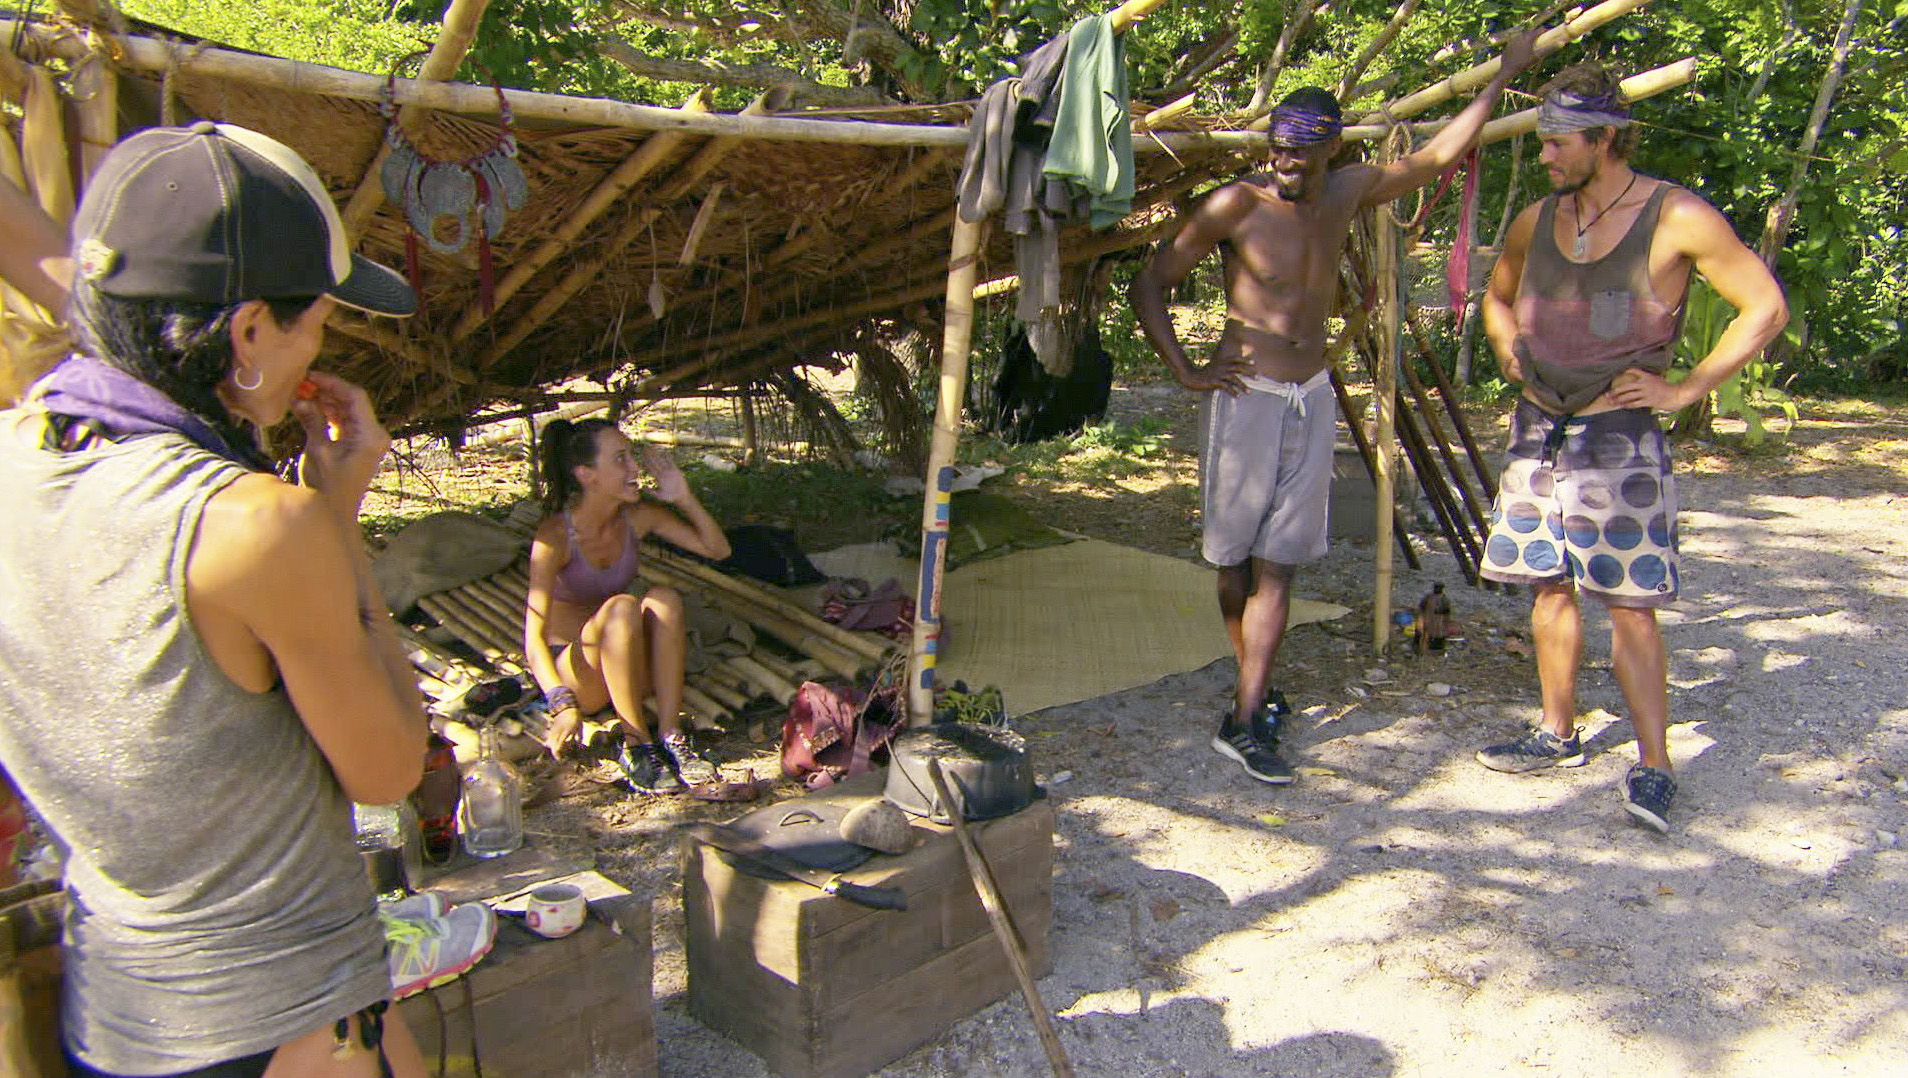 Chatting at camp in Season 27 Episode 13